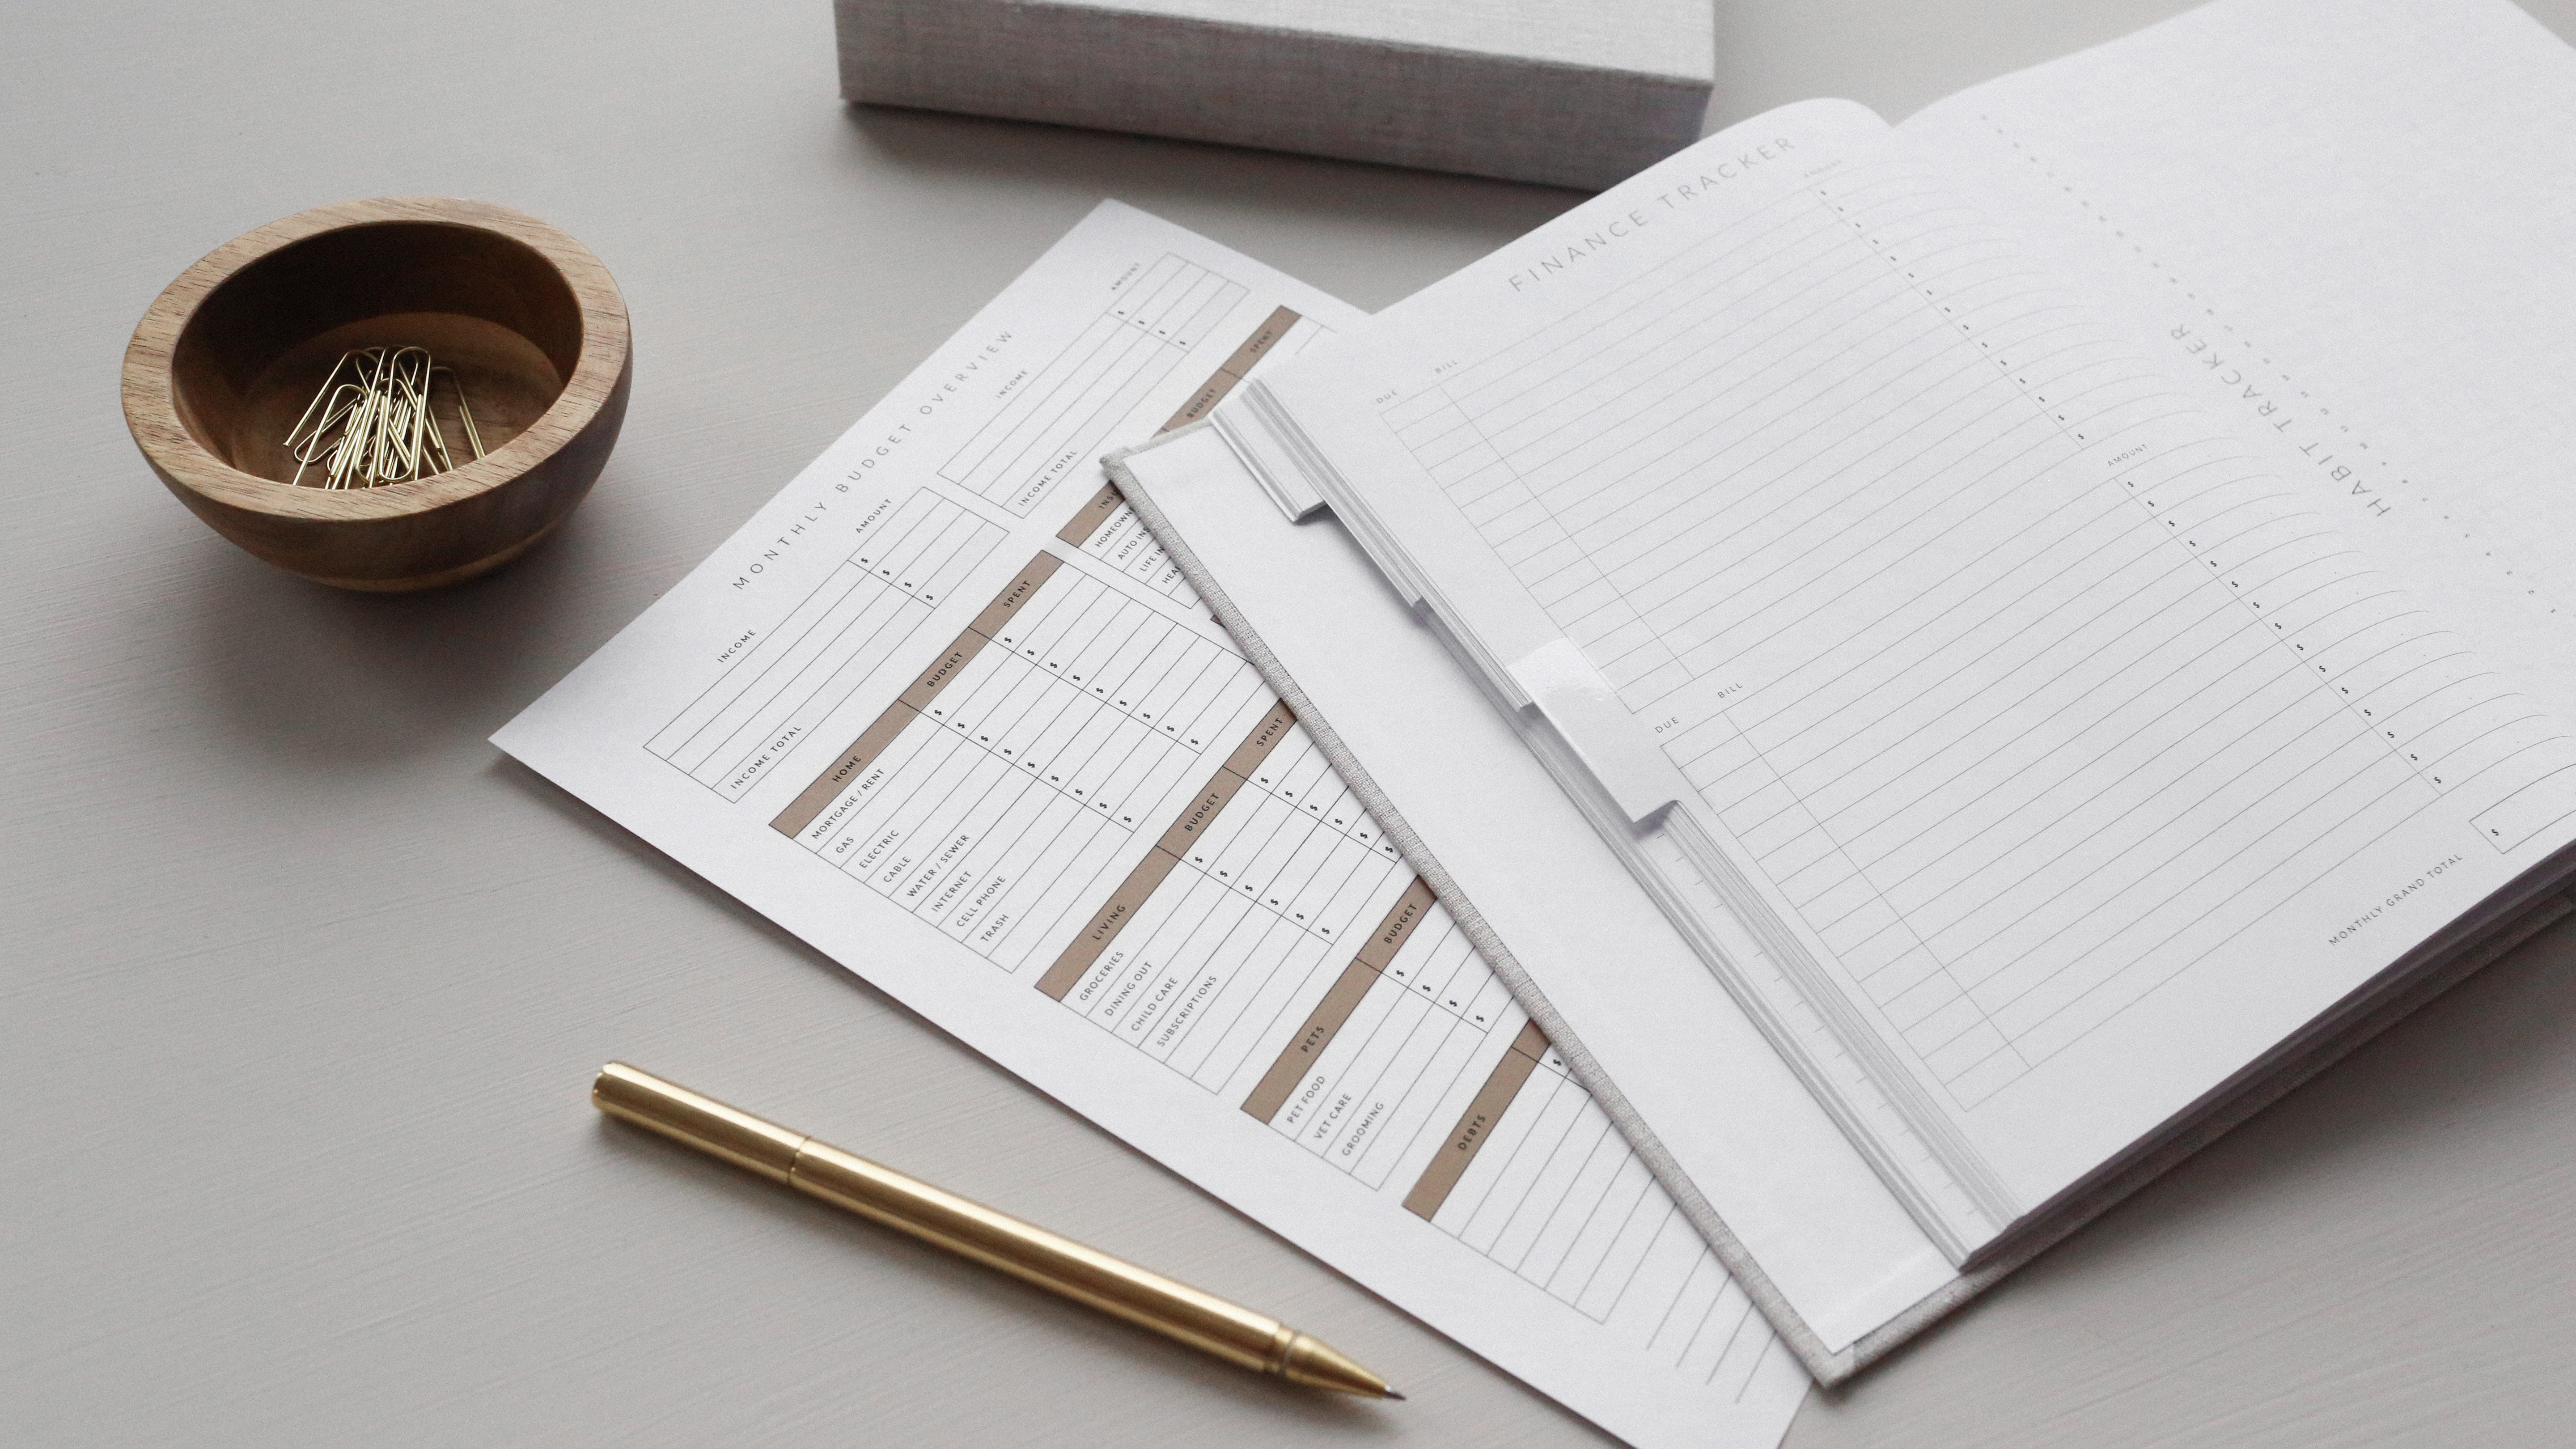 Good Habit budget and expense form to prepare personal finances